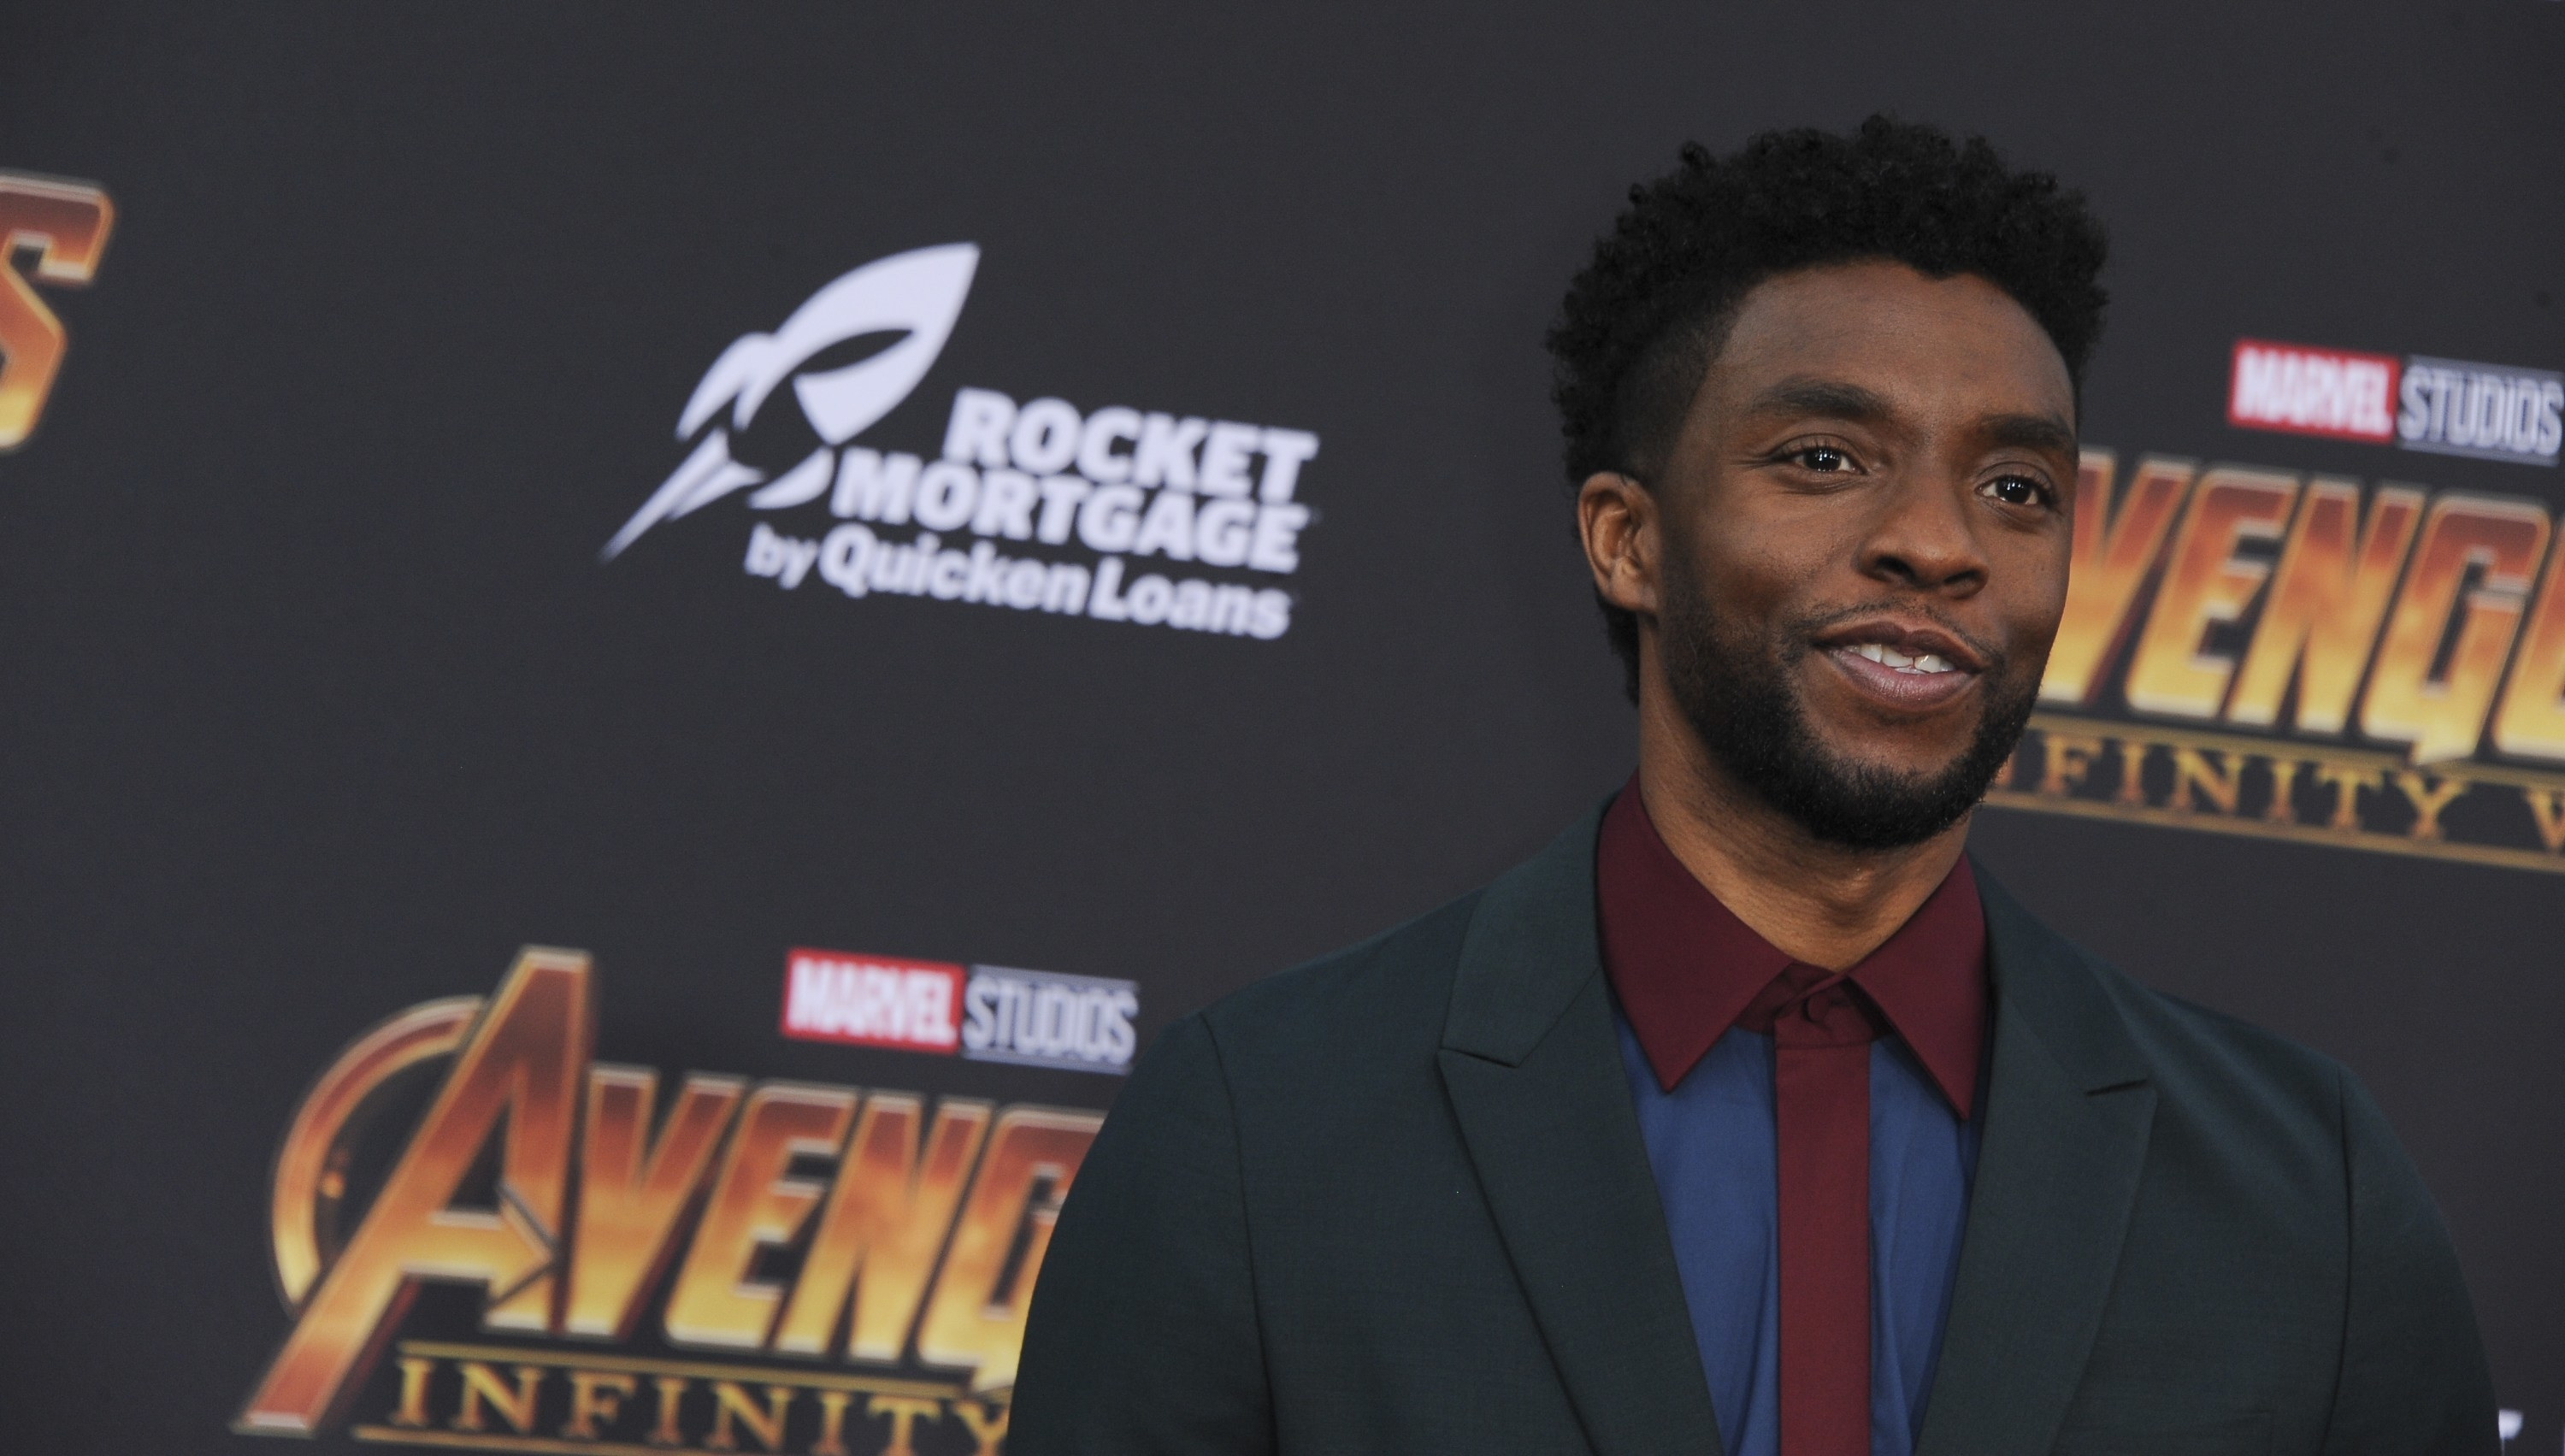 Chadwick Boseman at arrivals for Avengers: Infinity War